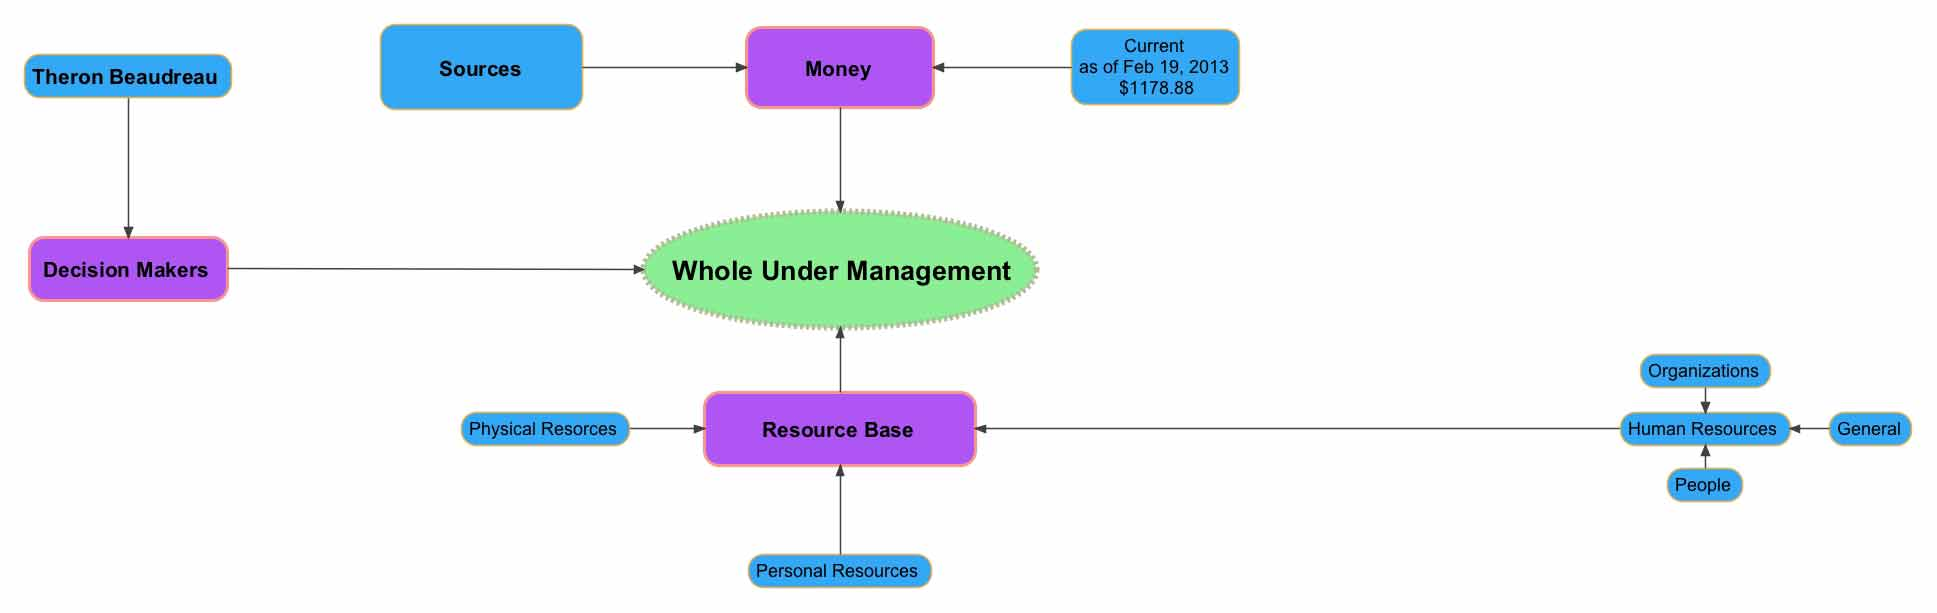 Whole Under Management Mind Map